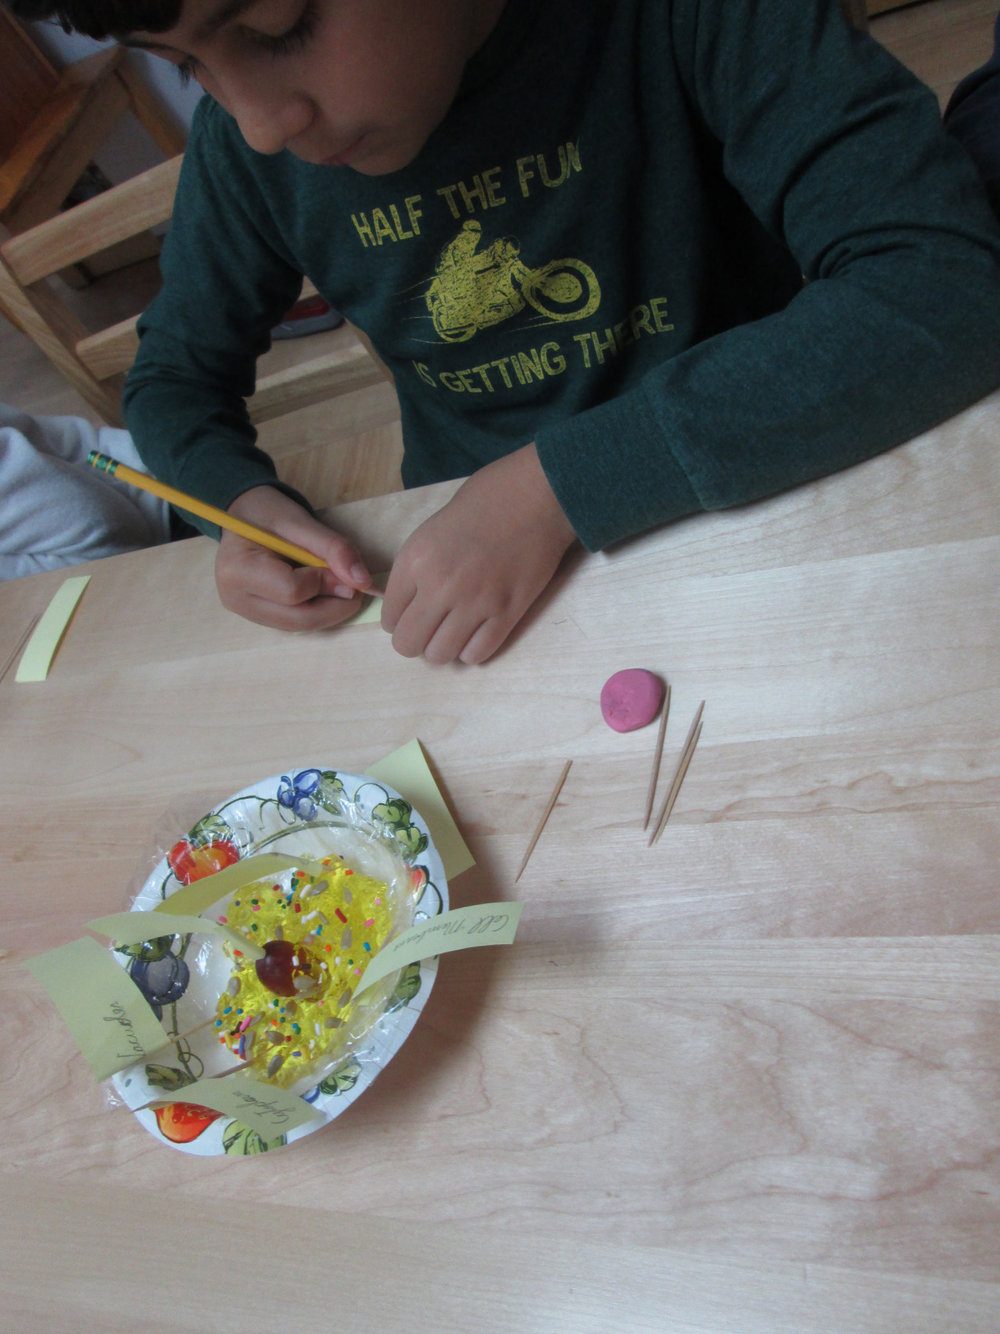 """Second and third grade Lower Elementary East students continued their Science studies with a lesson about animal and plant cells. As follow up work, the students studied diagrams and read about cells. Finally, each student made his or her own """"edible cell"""" with different food items."""